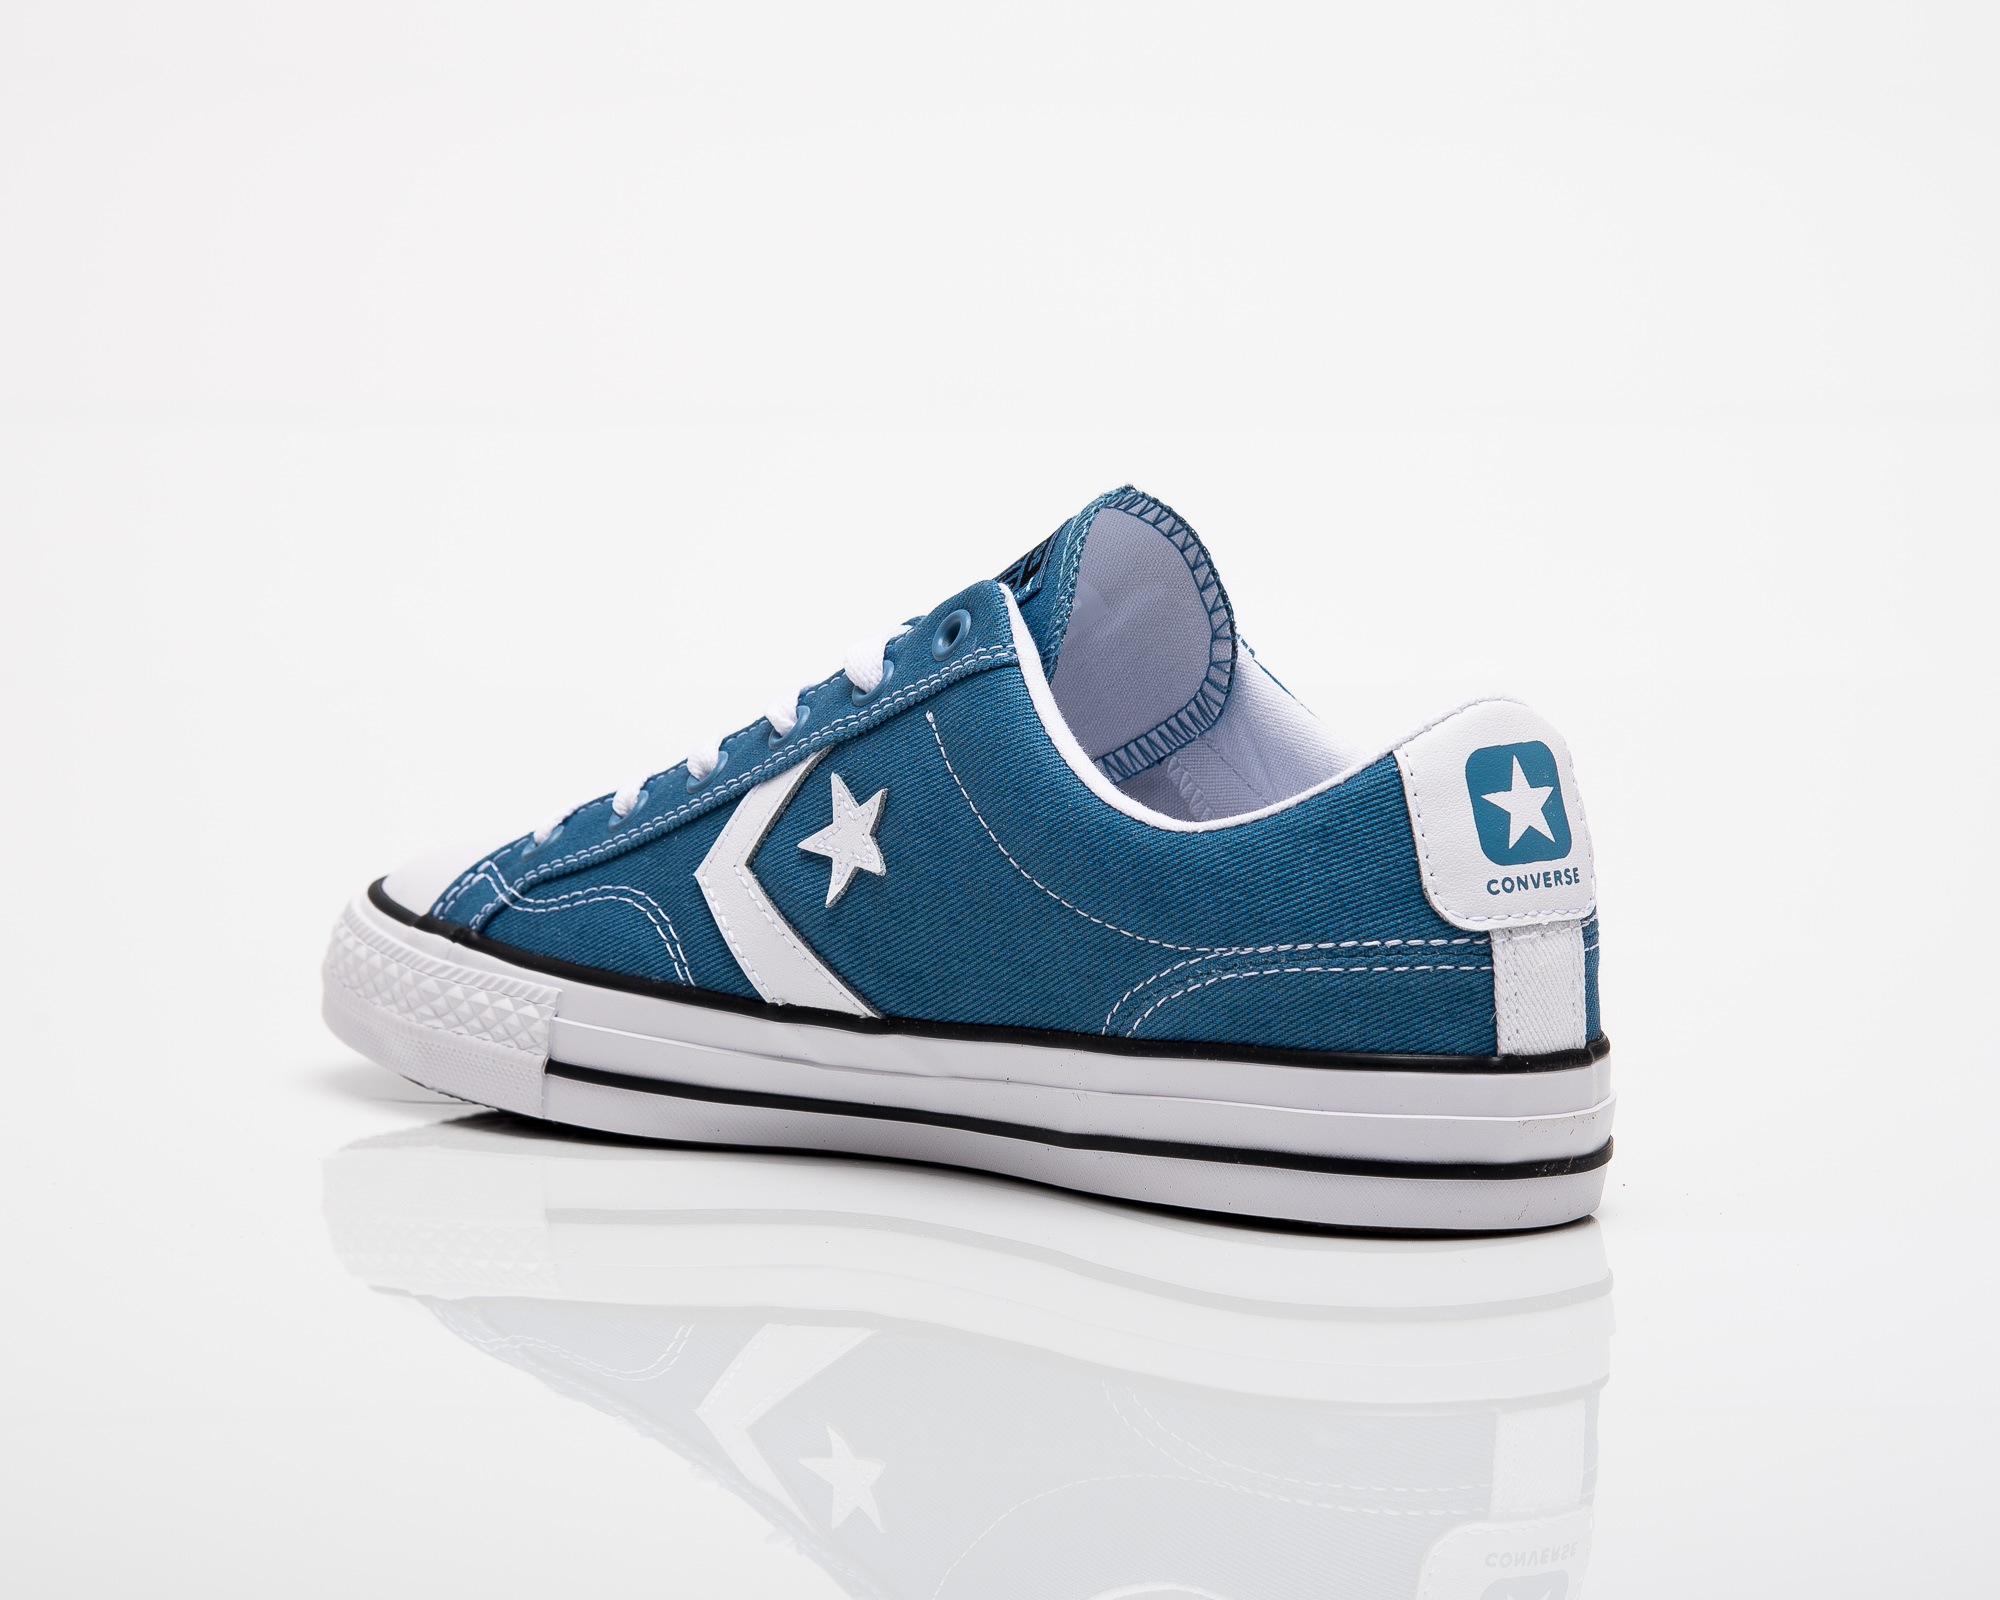 Converse Star Player Ox Summer Twill - Shoes Casual - Sporting goods ... 03f1f1c9d2d